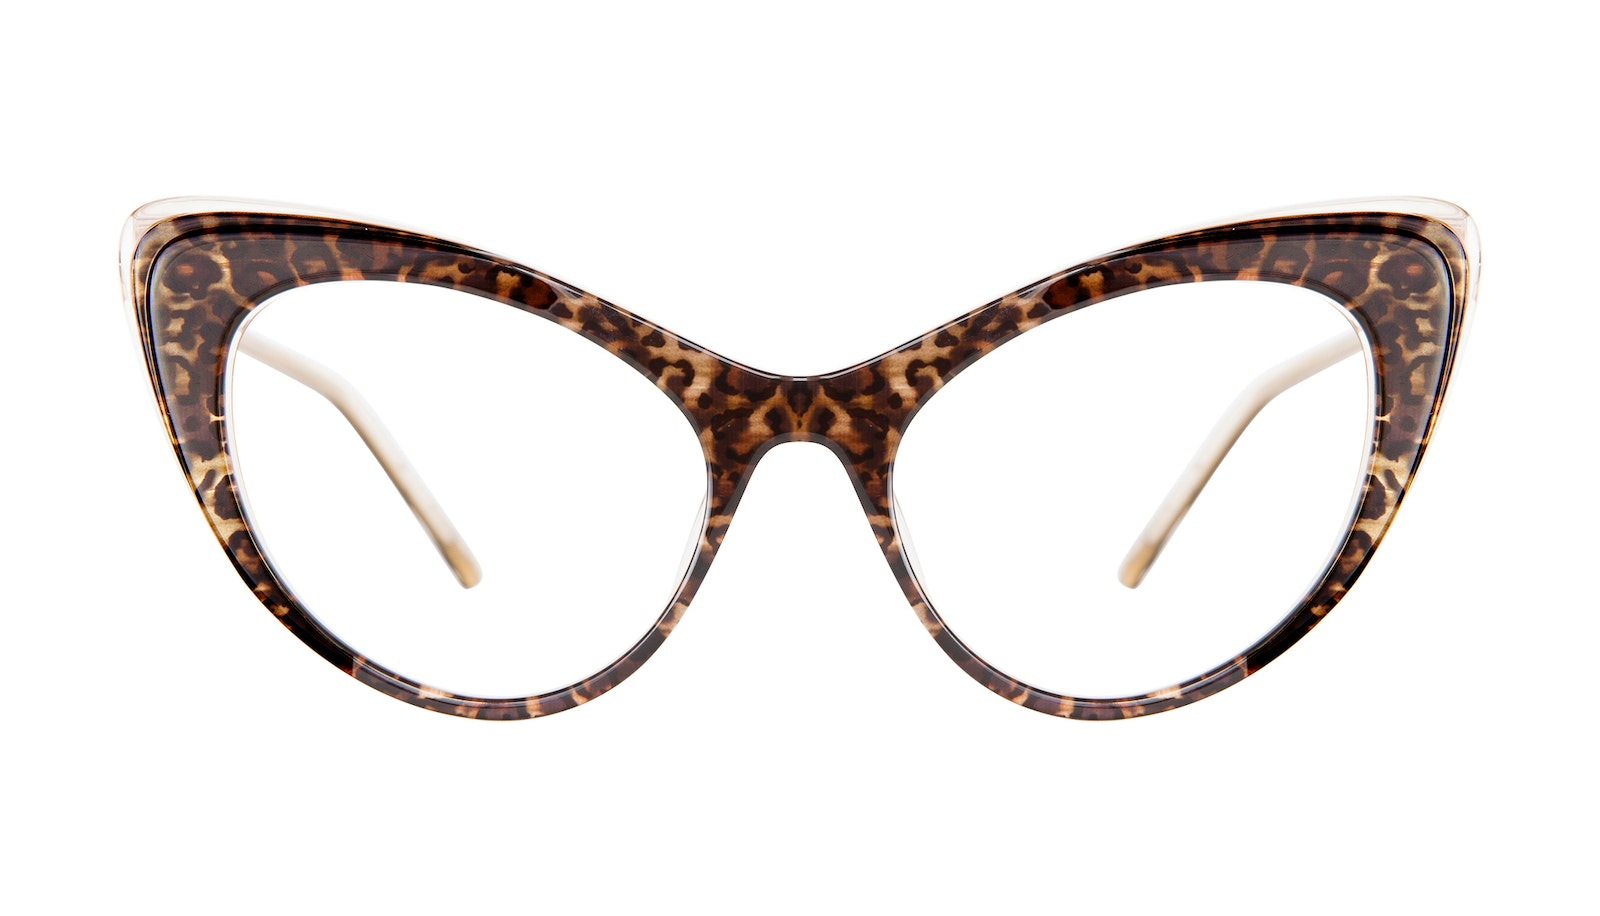 Affordable Fashion Glasses Cat Eye Eyeglasses Women Keiko-Chan Leo